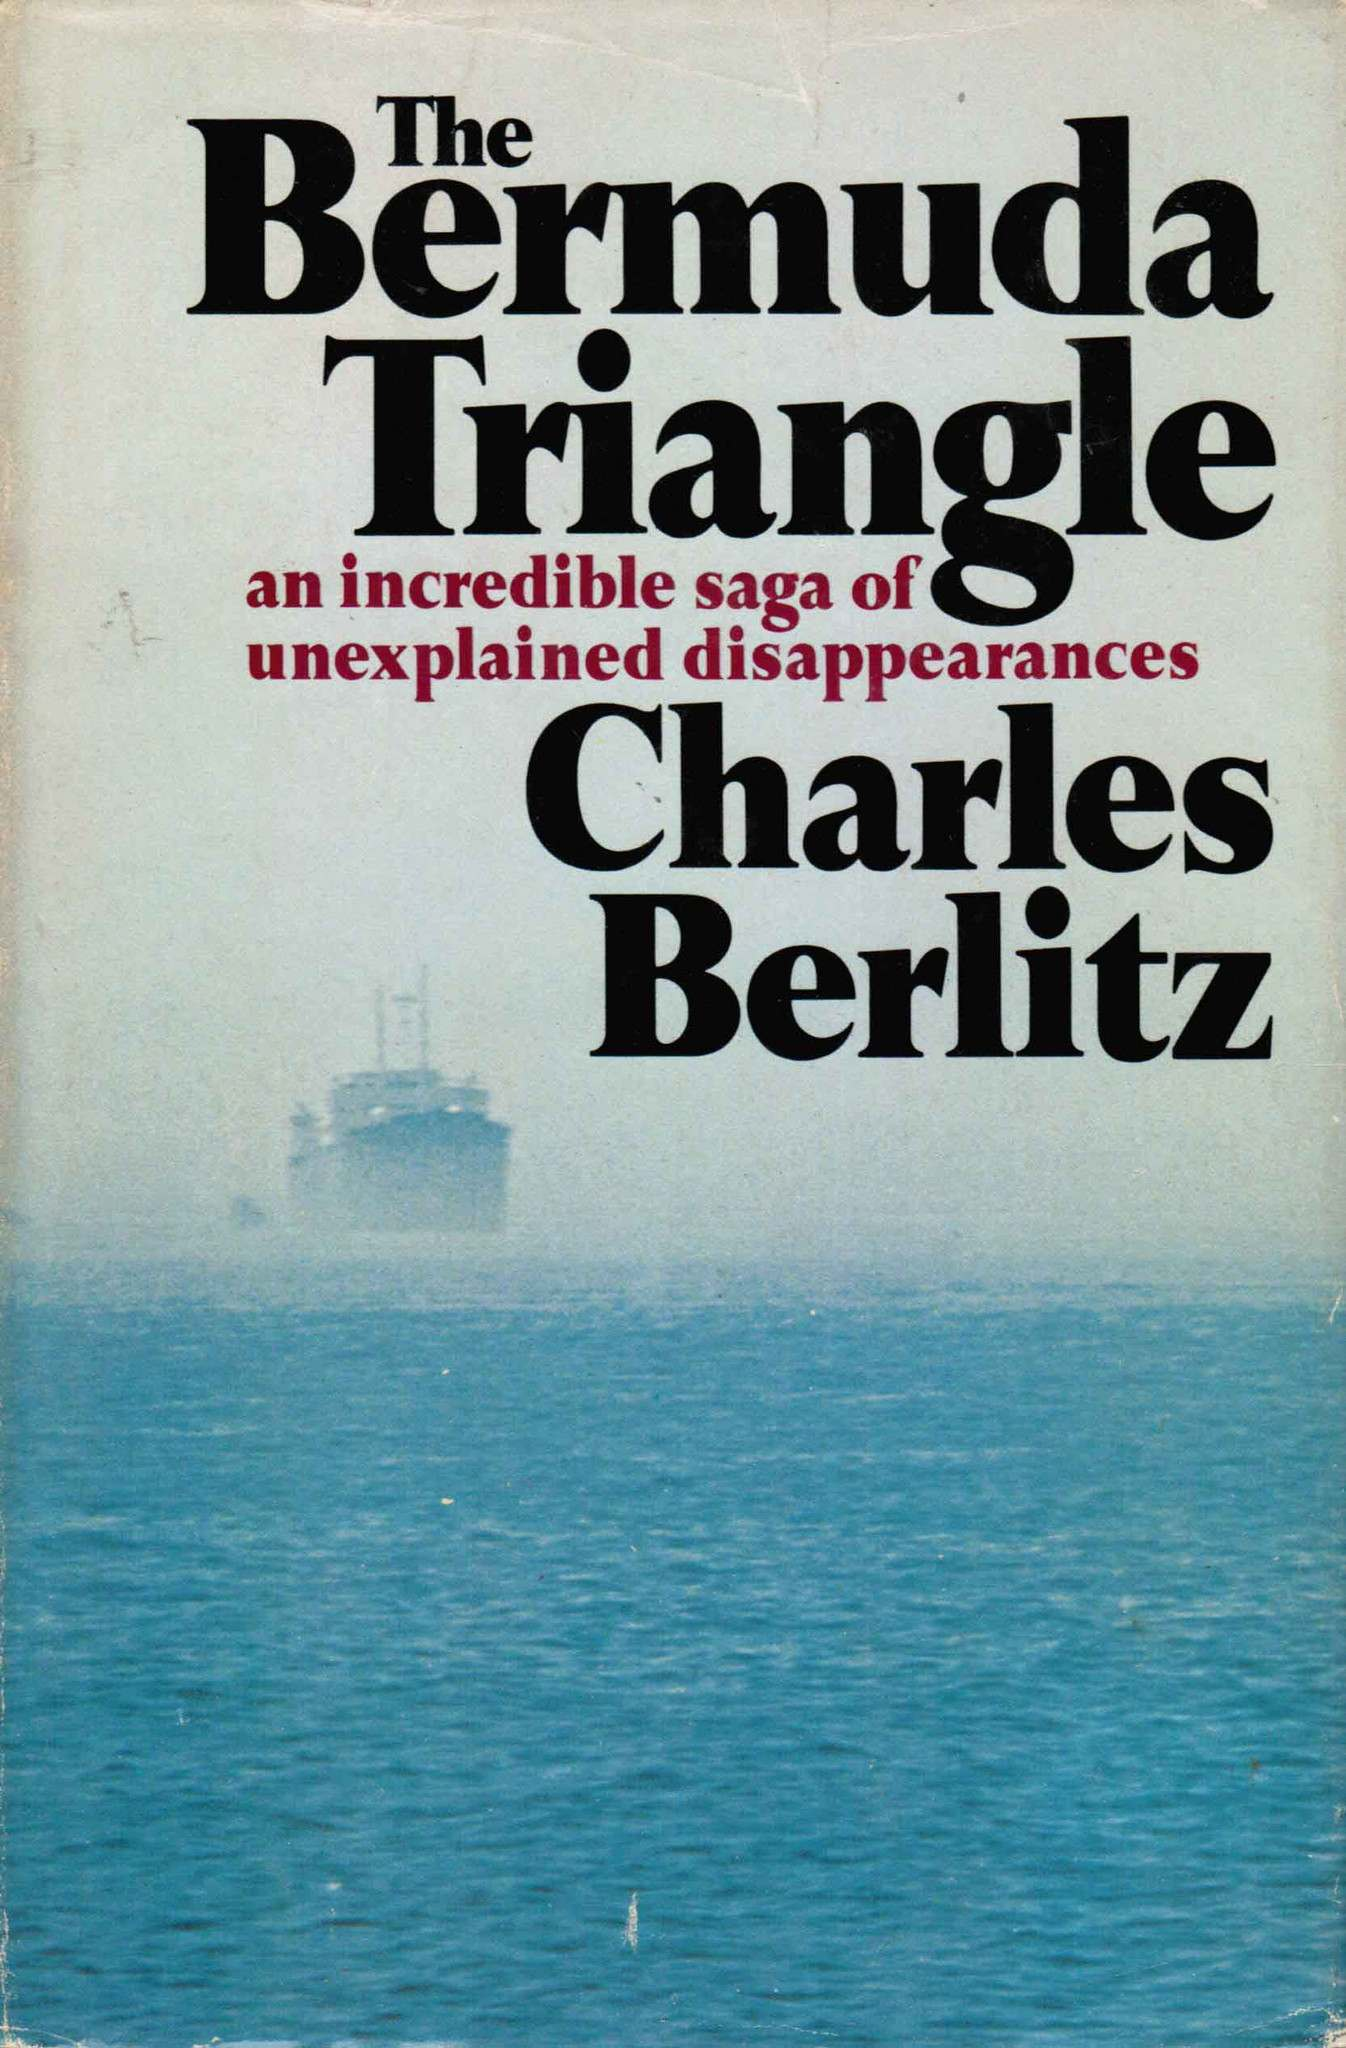 The-Bermuda-Triangle-Charles-Berlitz--Book-Club